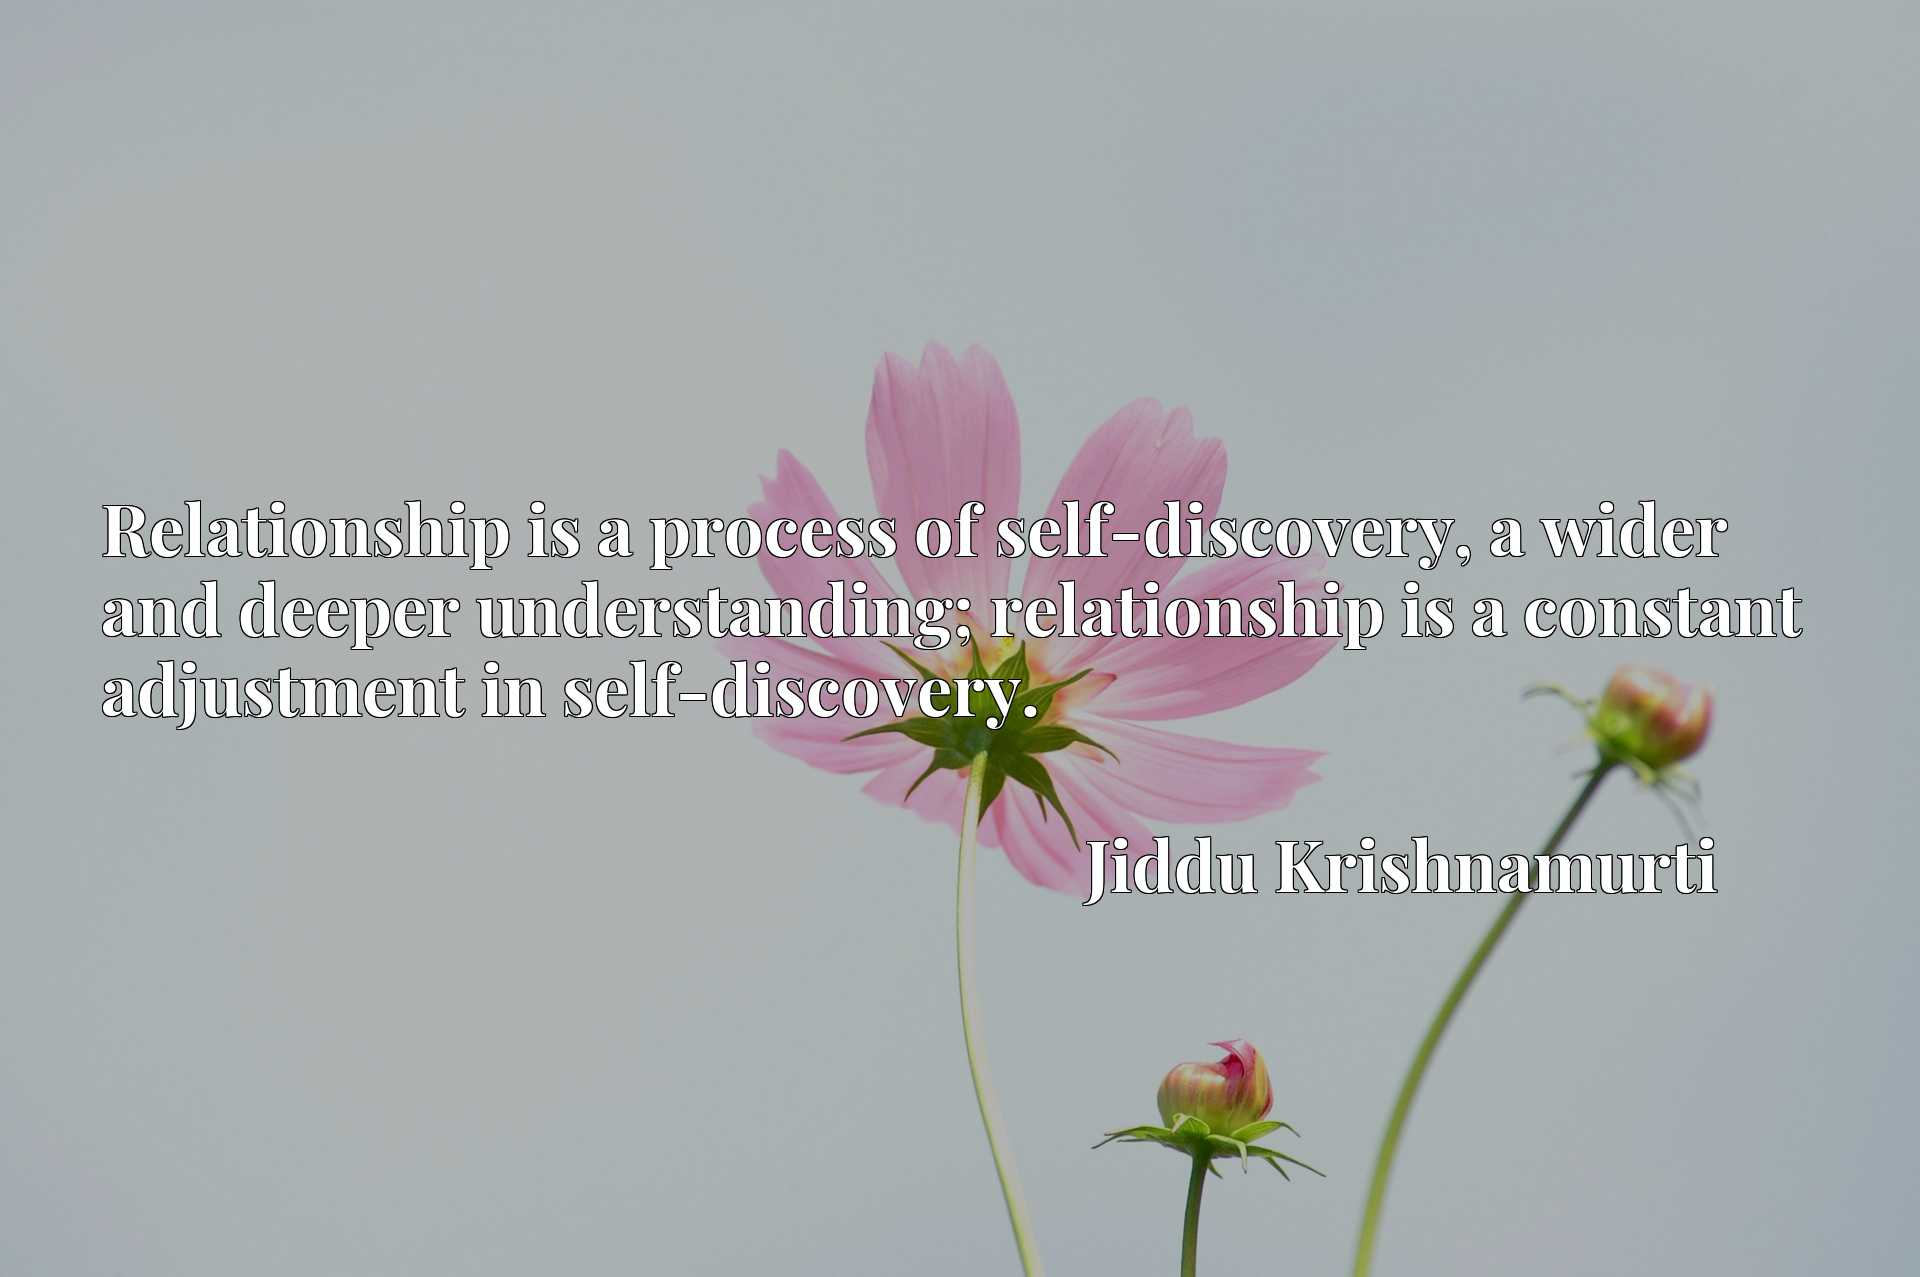 Relationship is a process of self-discovery, a wider and deeper understanding; relationship is a constant adjustment in self-discovery.